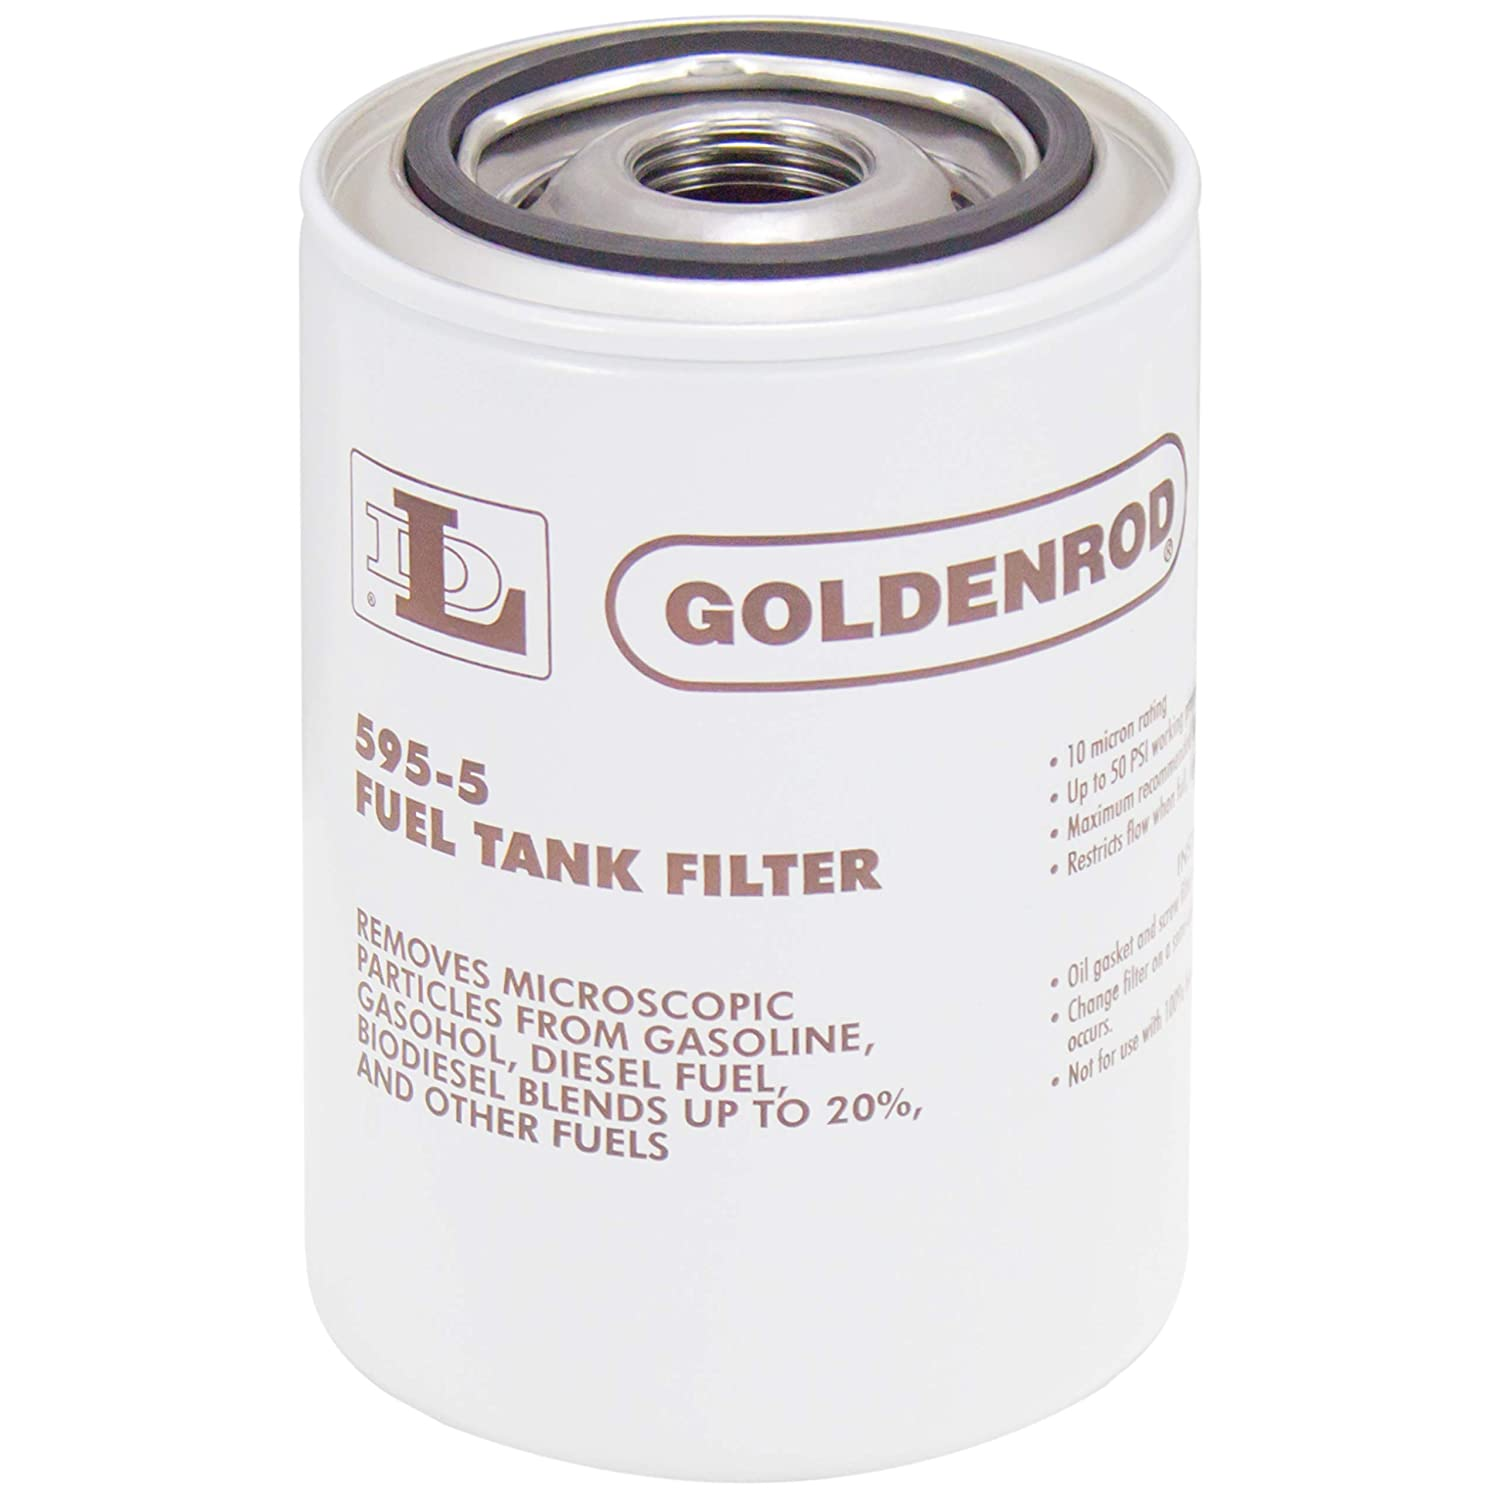 Goldenrod 595 5 Fuel Tank Filter Replacement Canister Automotive